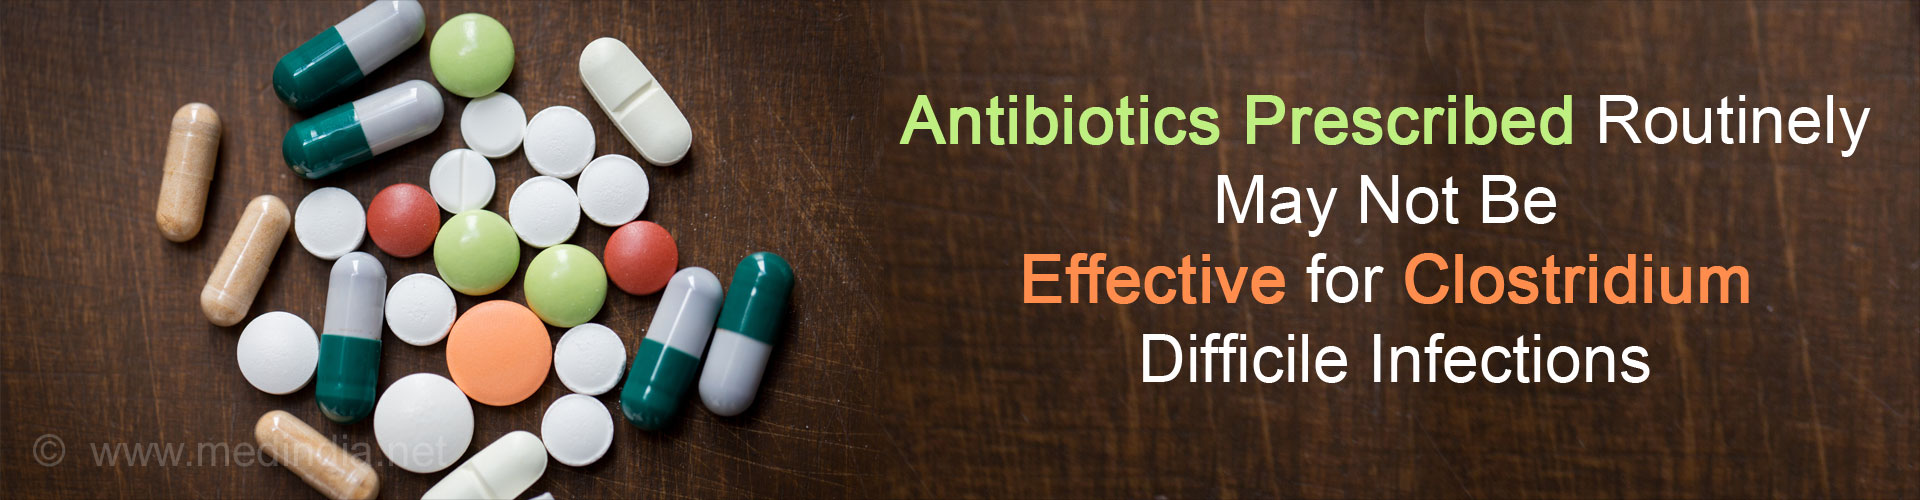 Routinely Prescribed Antibiotics Not Effective for Treating Severe Clostridium Difficile Infections